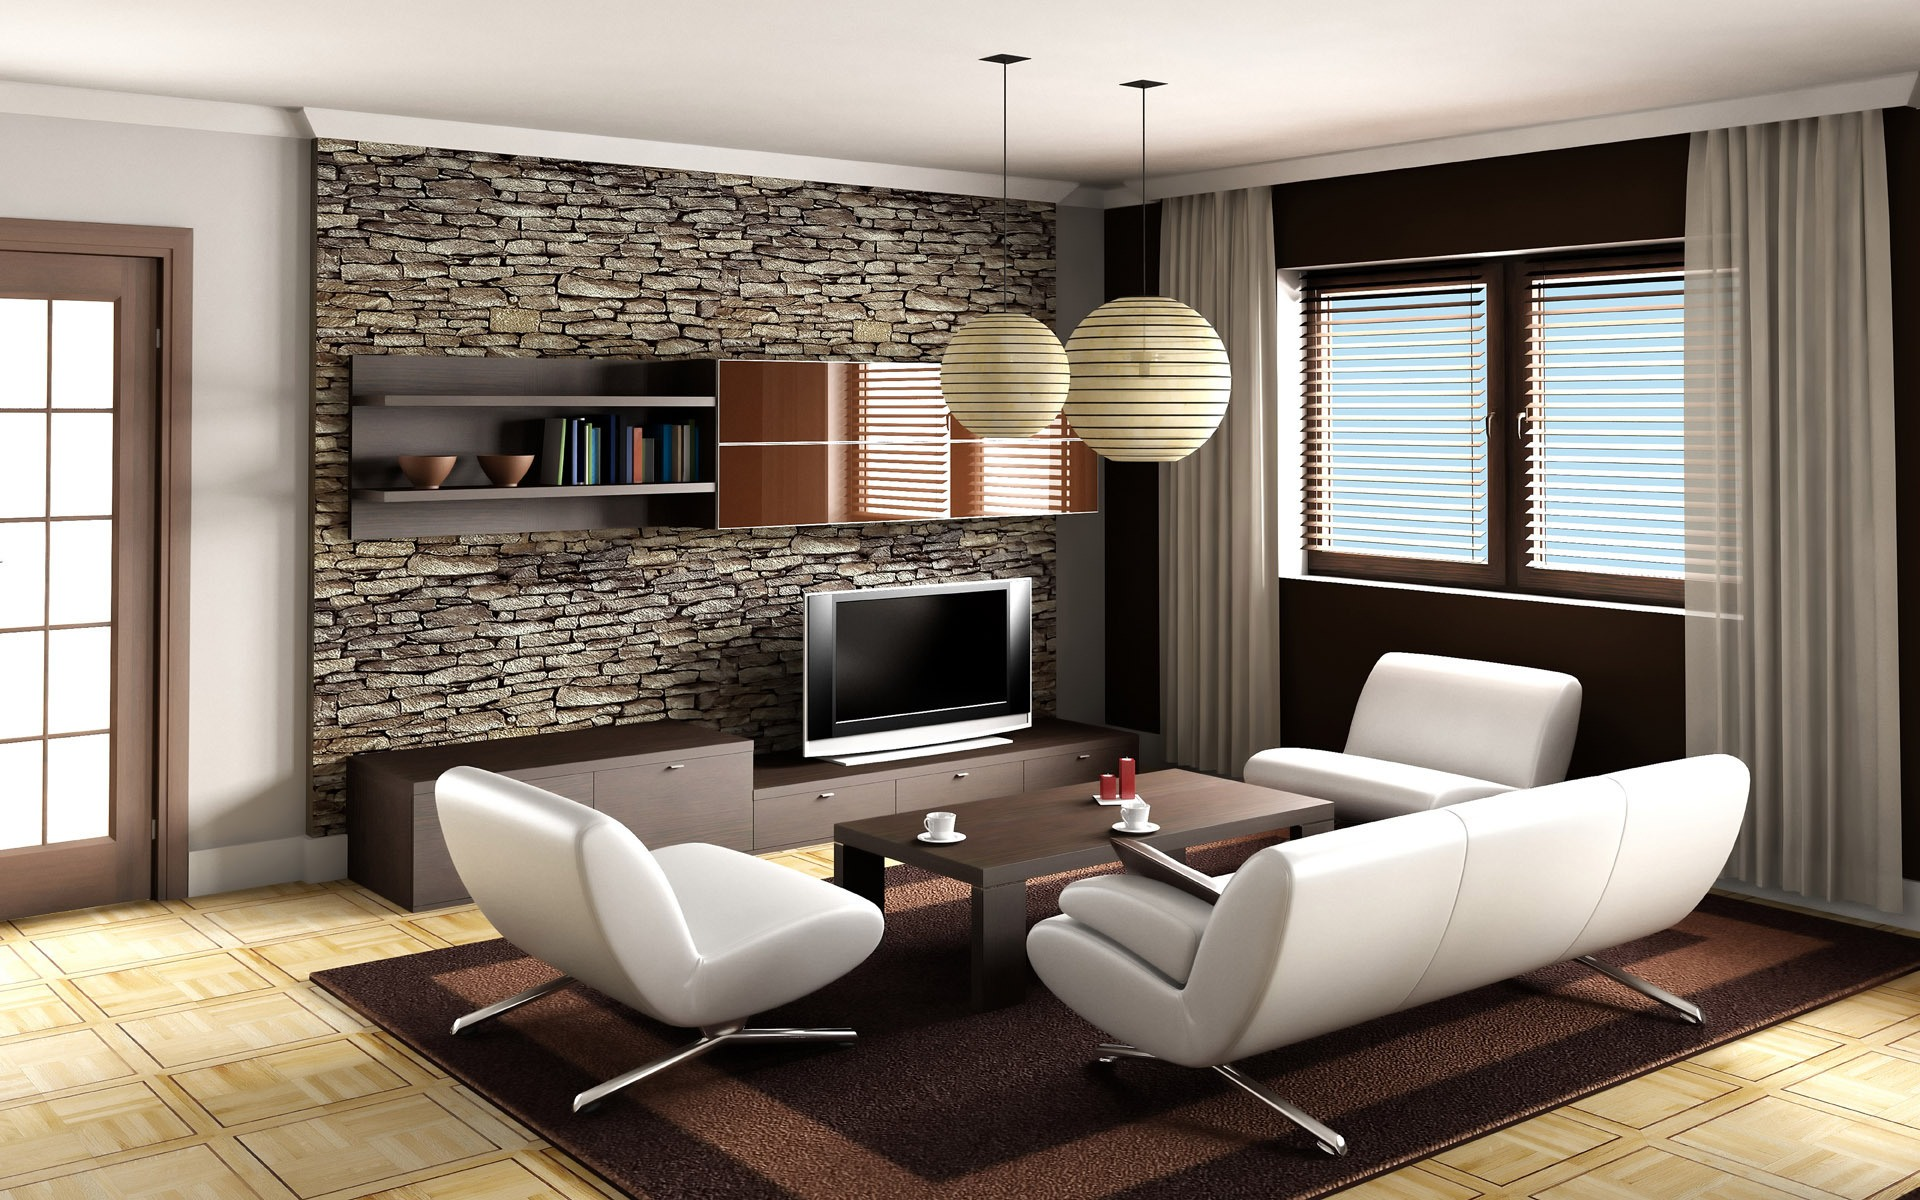 attractive cool living room ideas with cool living room ideas amazing bedroom FZXLPEV